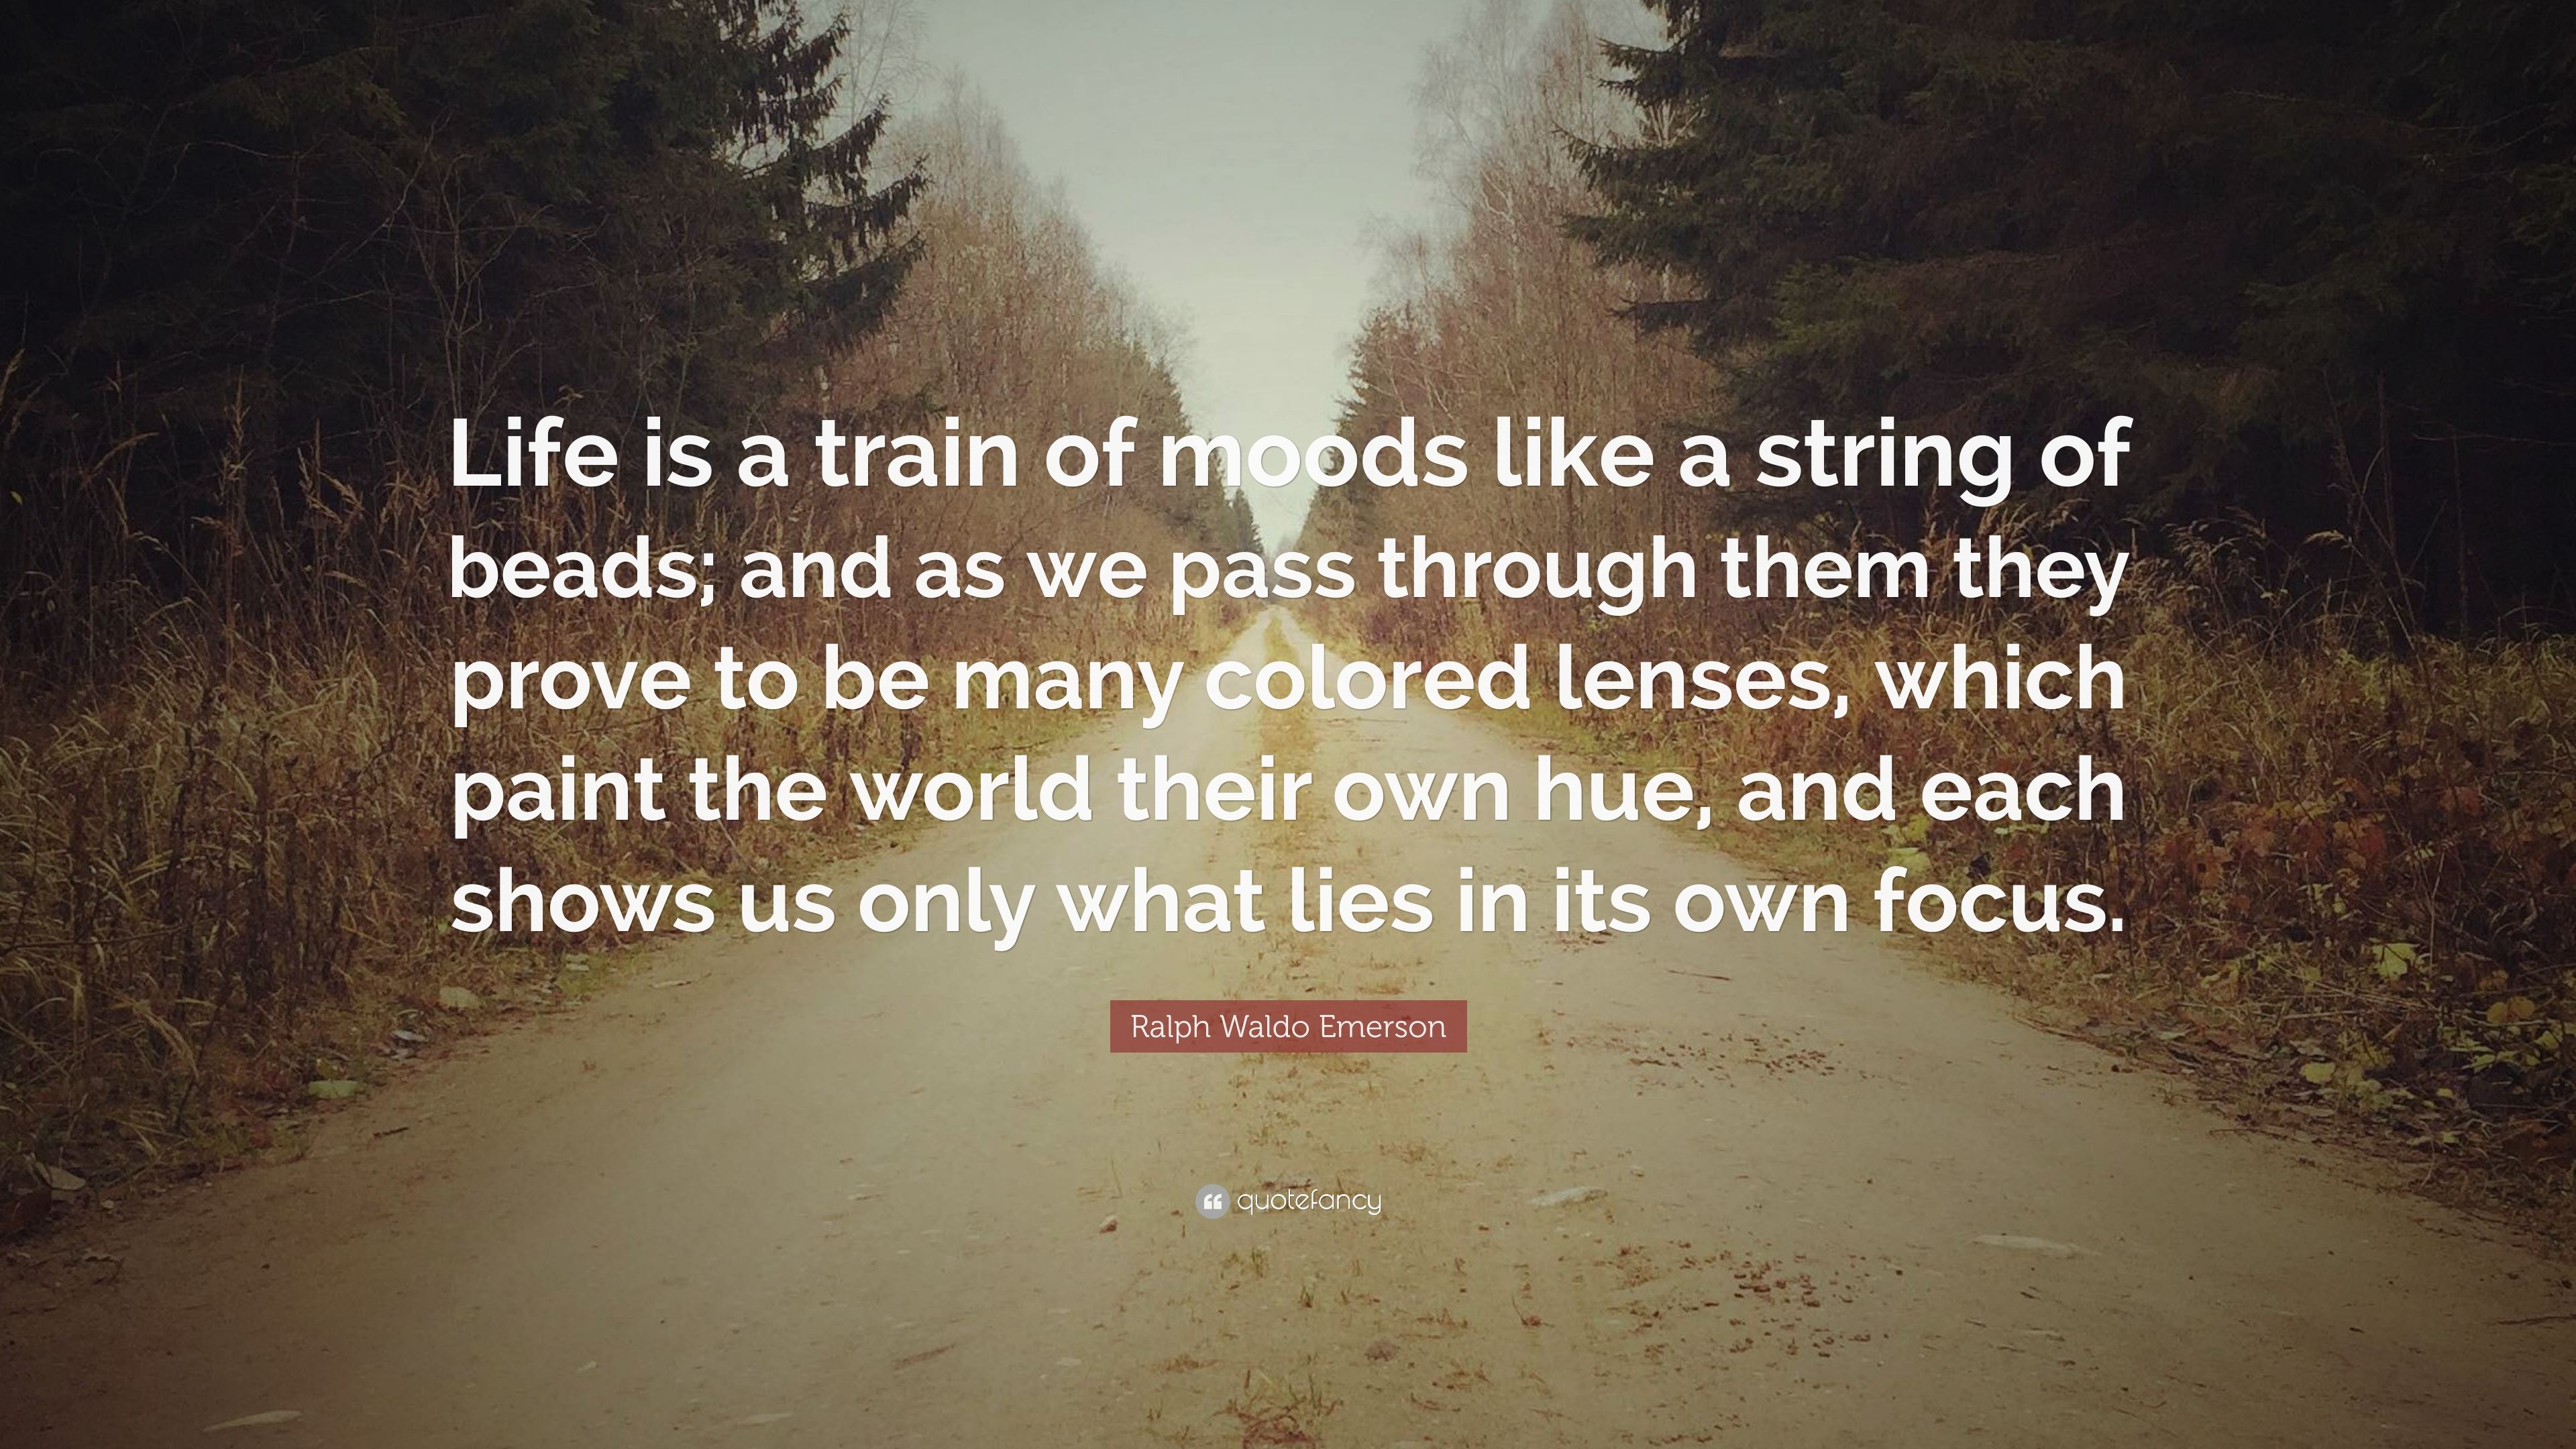 Ralph Waldo Emerson Quote Life Is A Train Of Moods Like A String